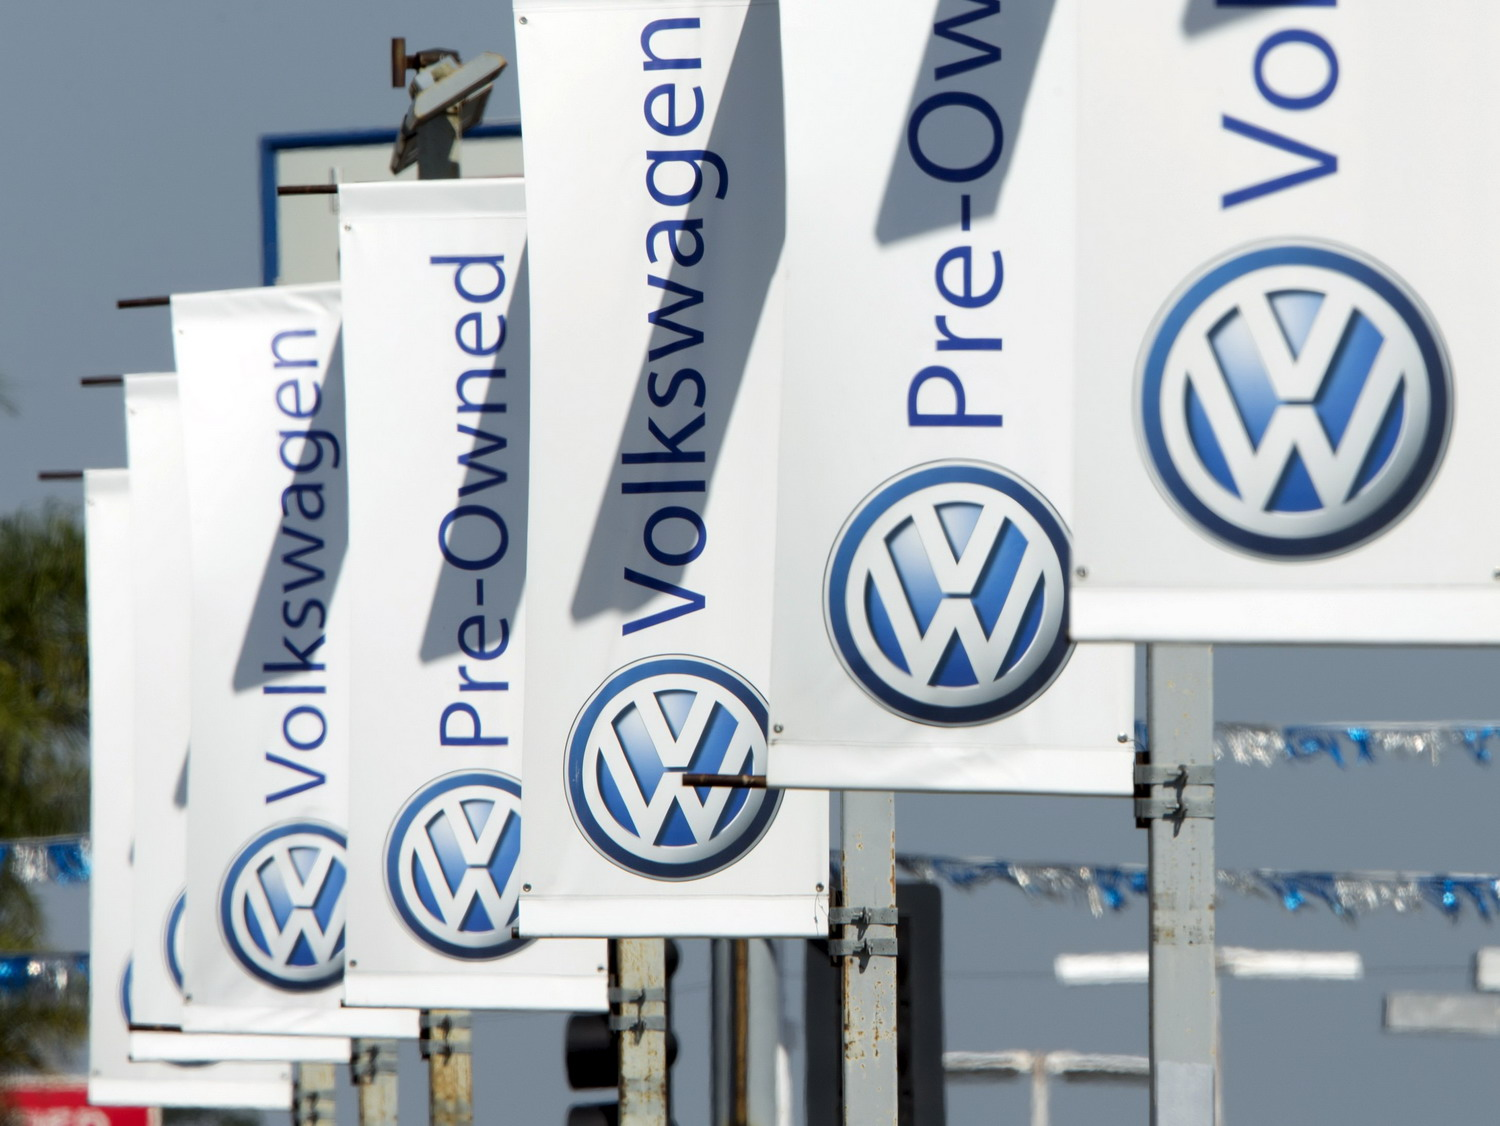 VW customers, dealers seek speedy action on emissions scandal